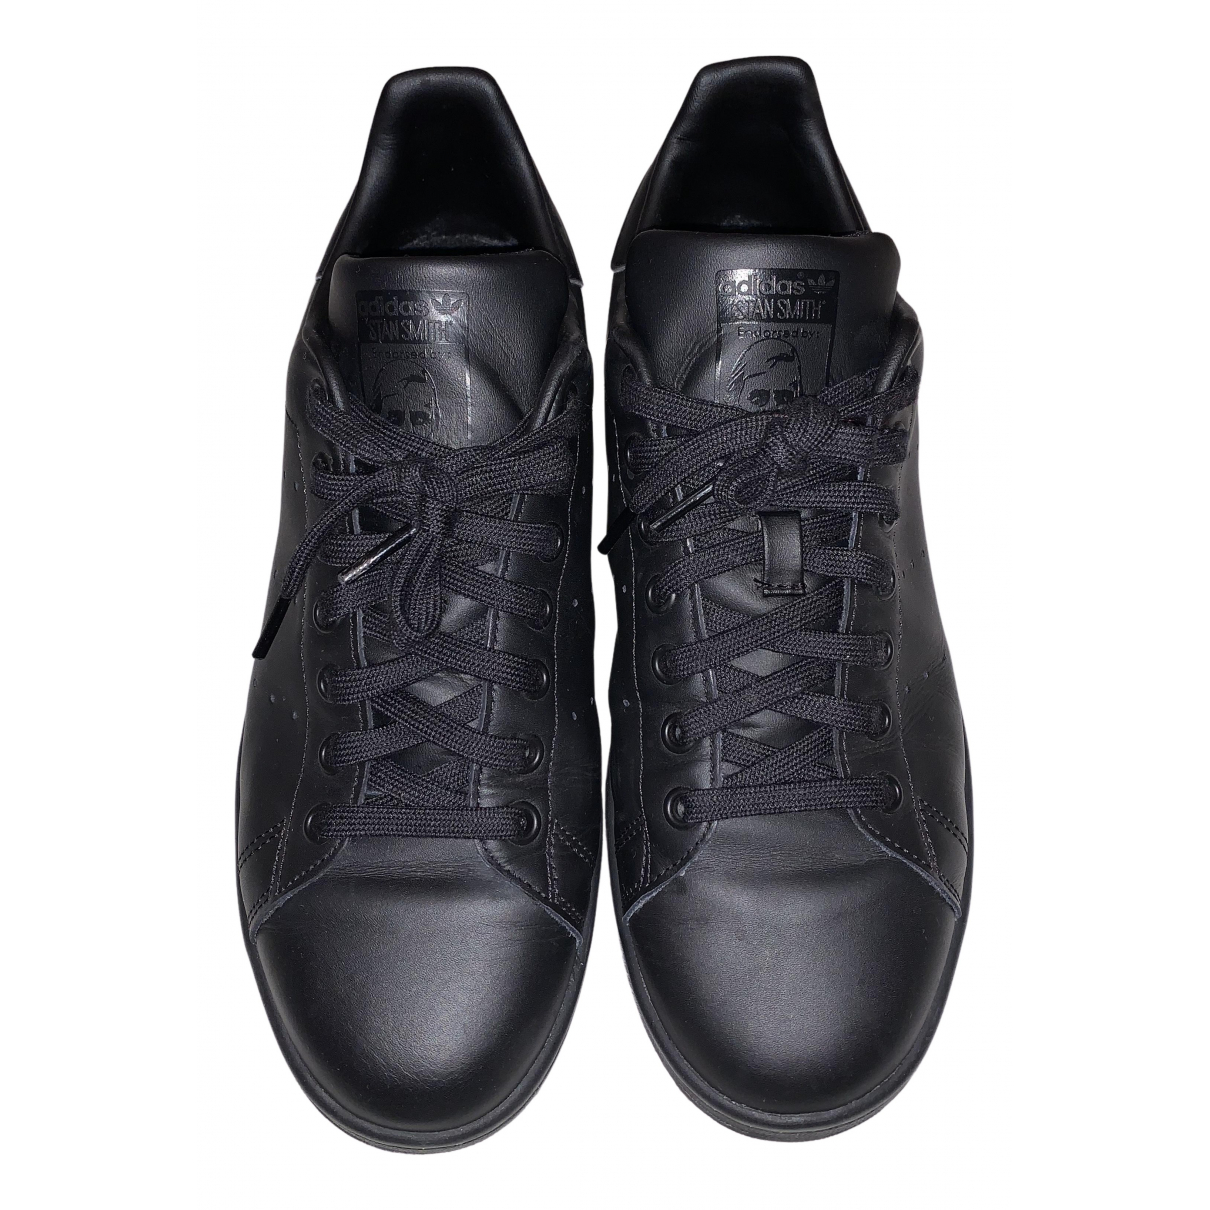 Adidas Stan Smith Black Leather Trainers for Women 8 UK